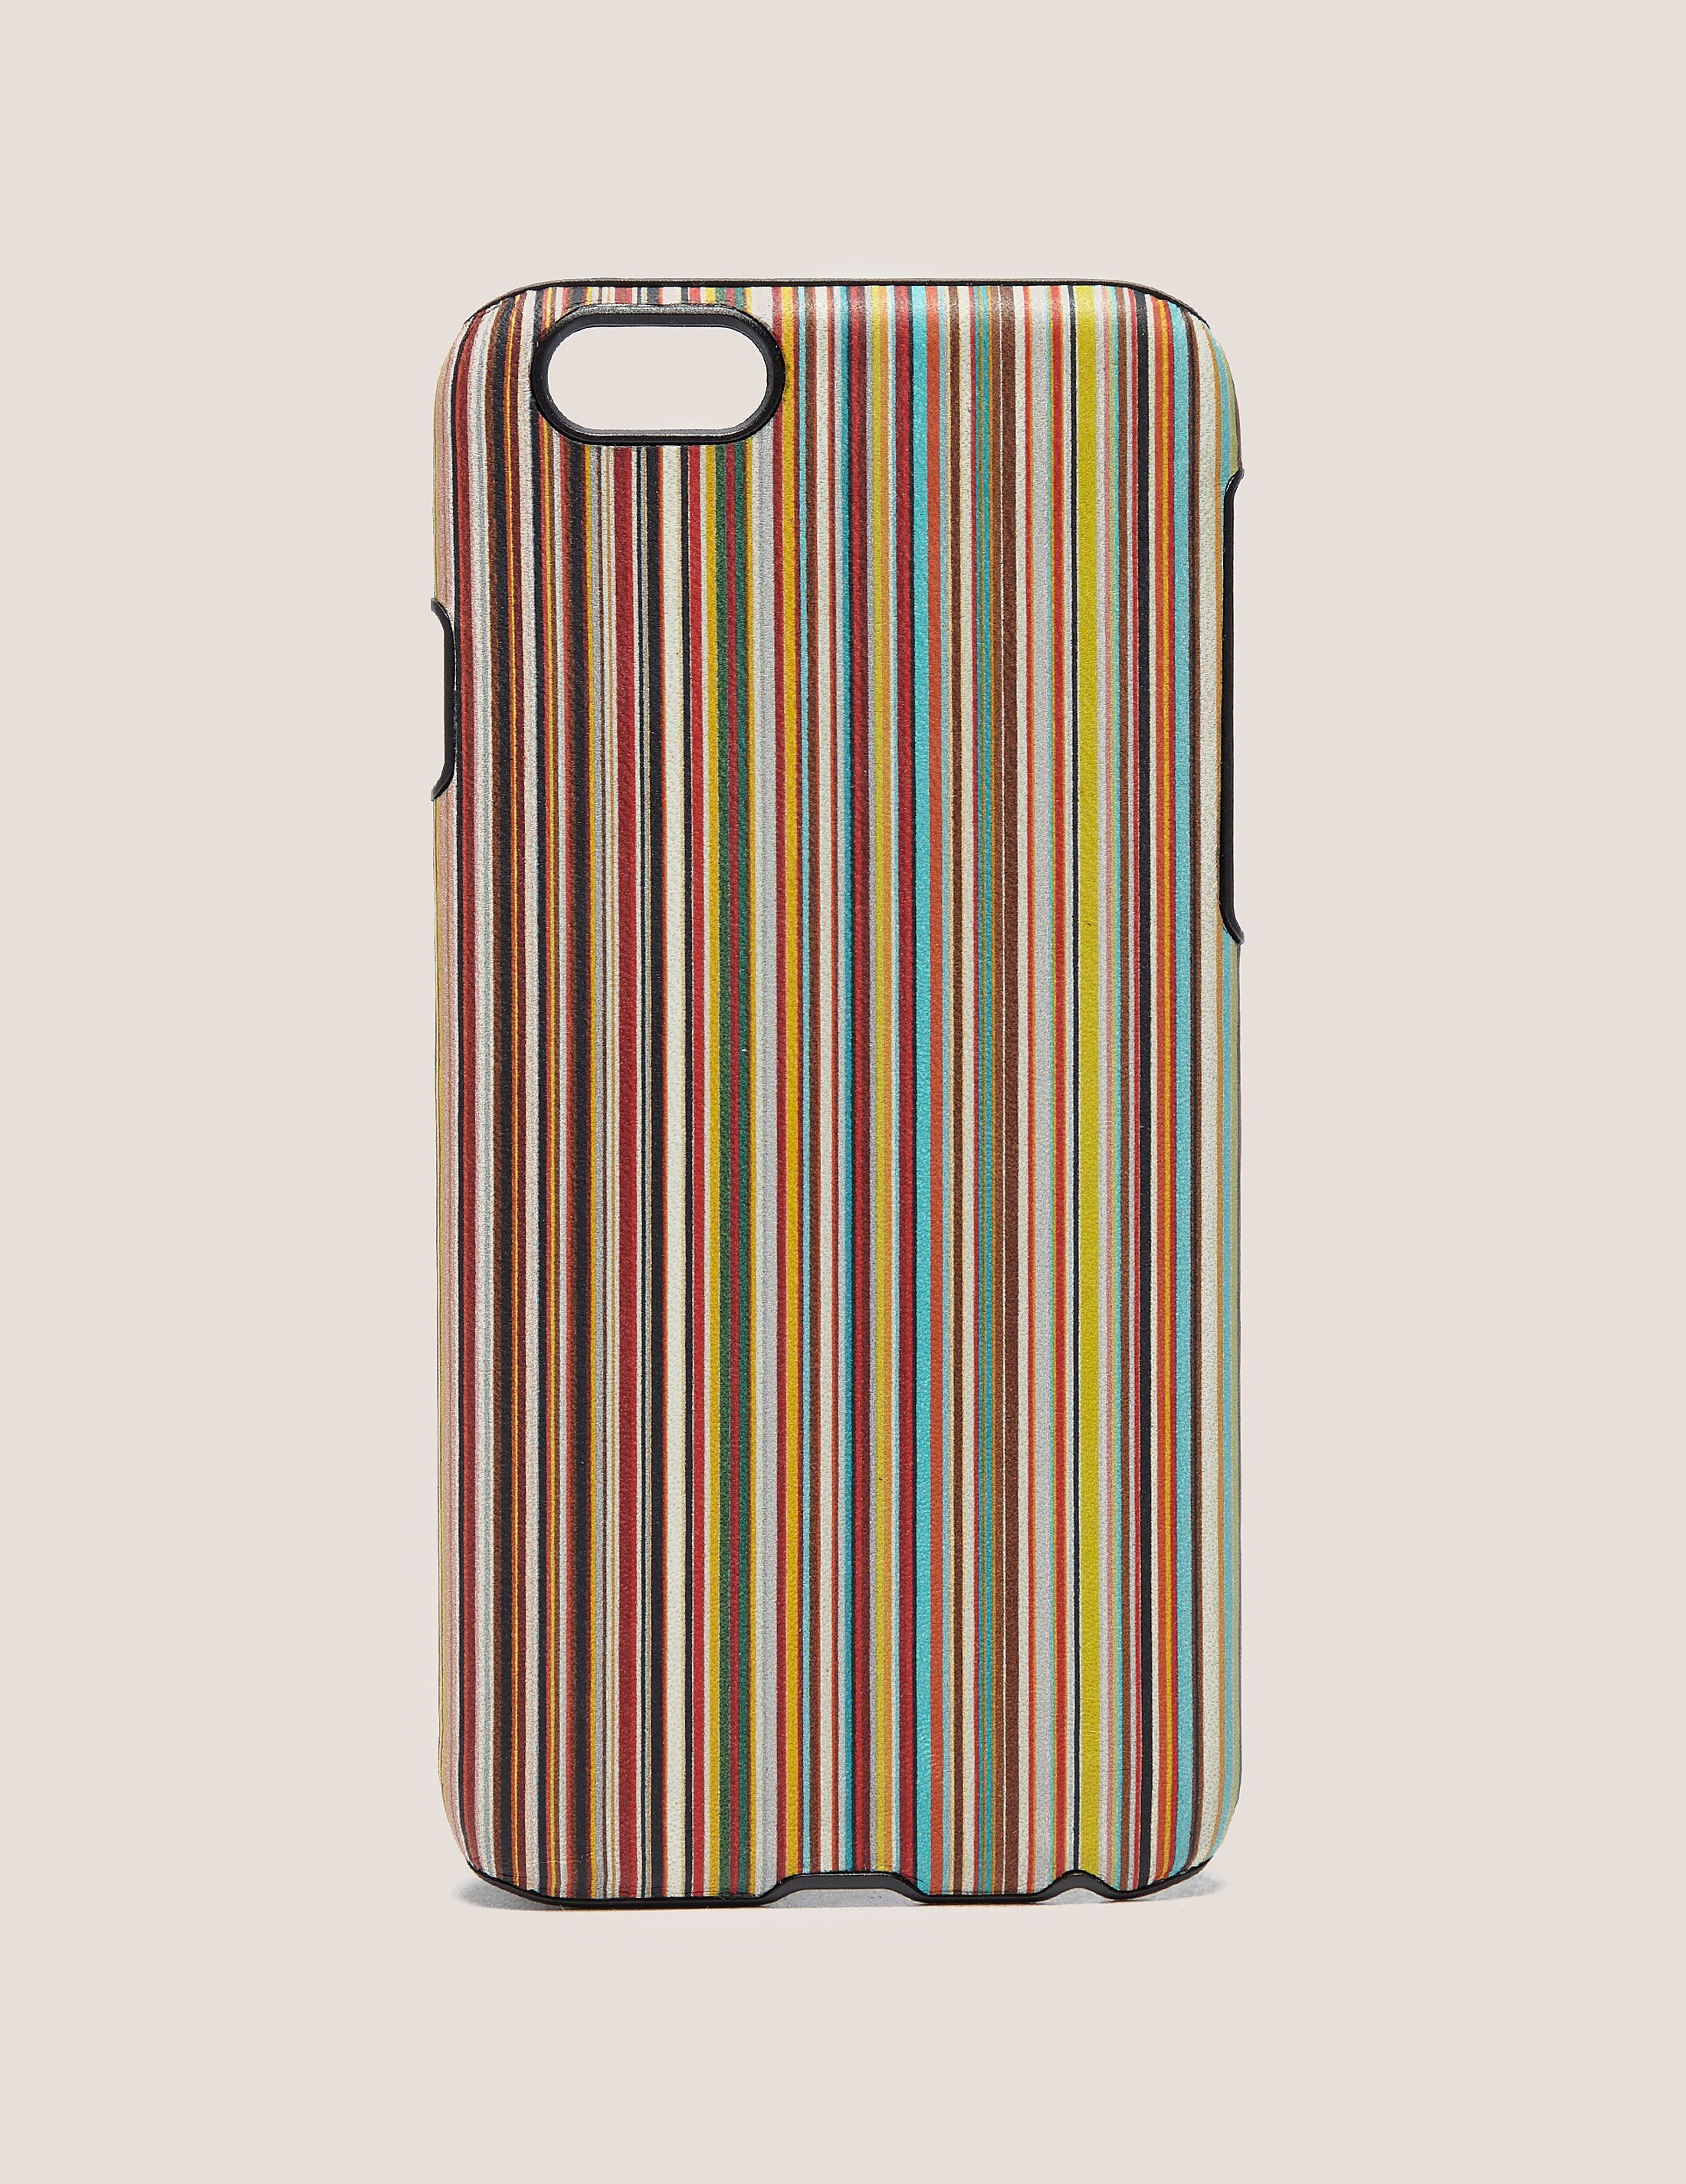 Paul Smith Signature Stripe iPhone 6 Case